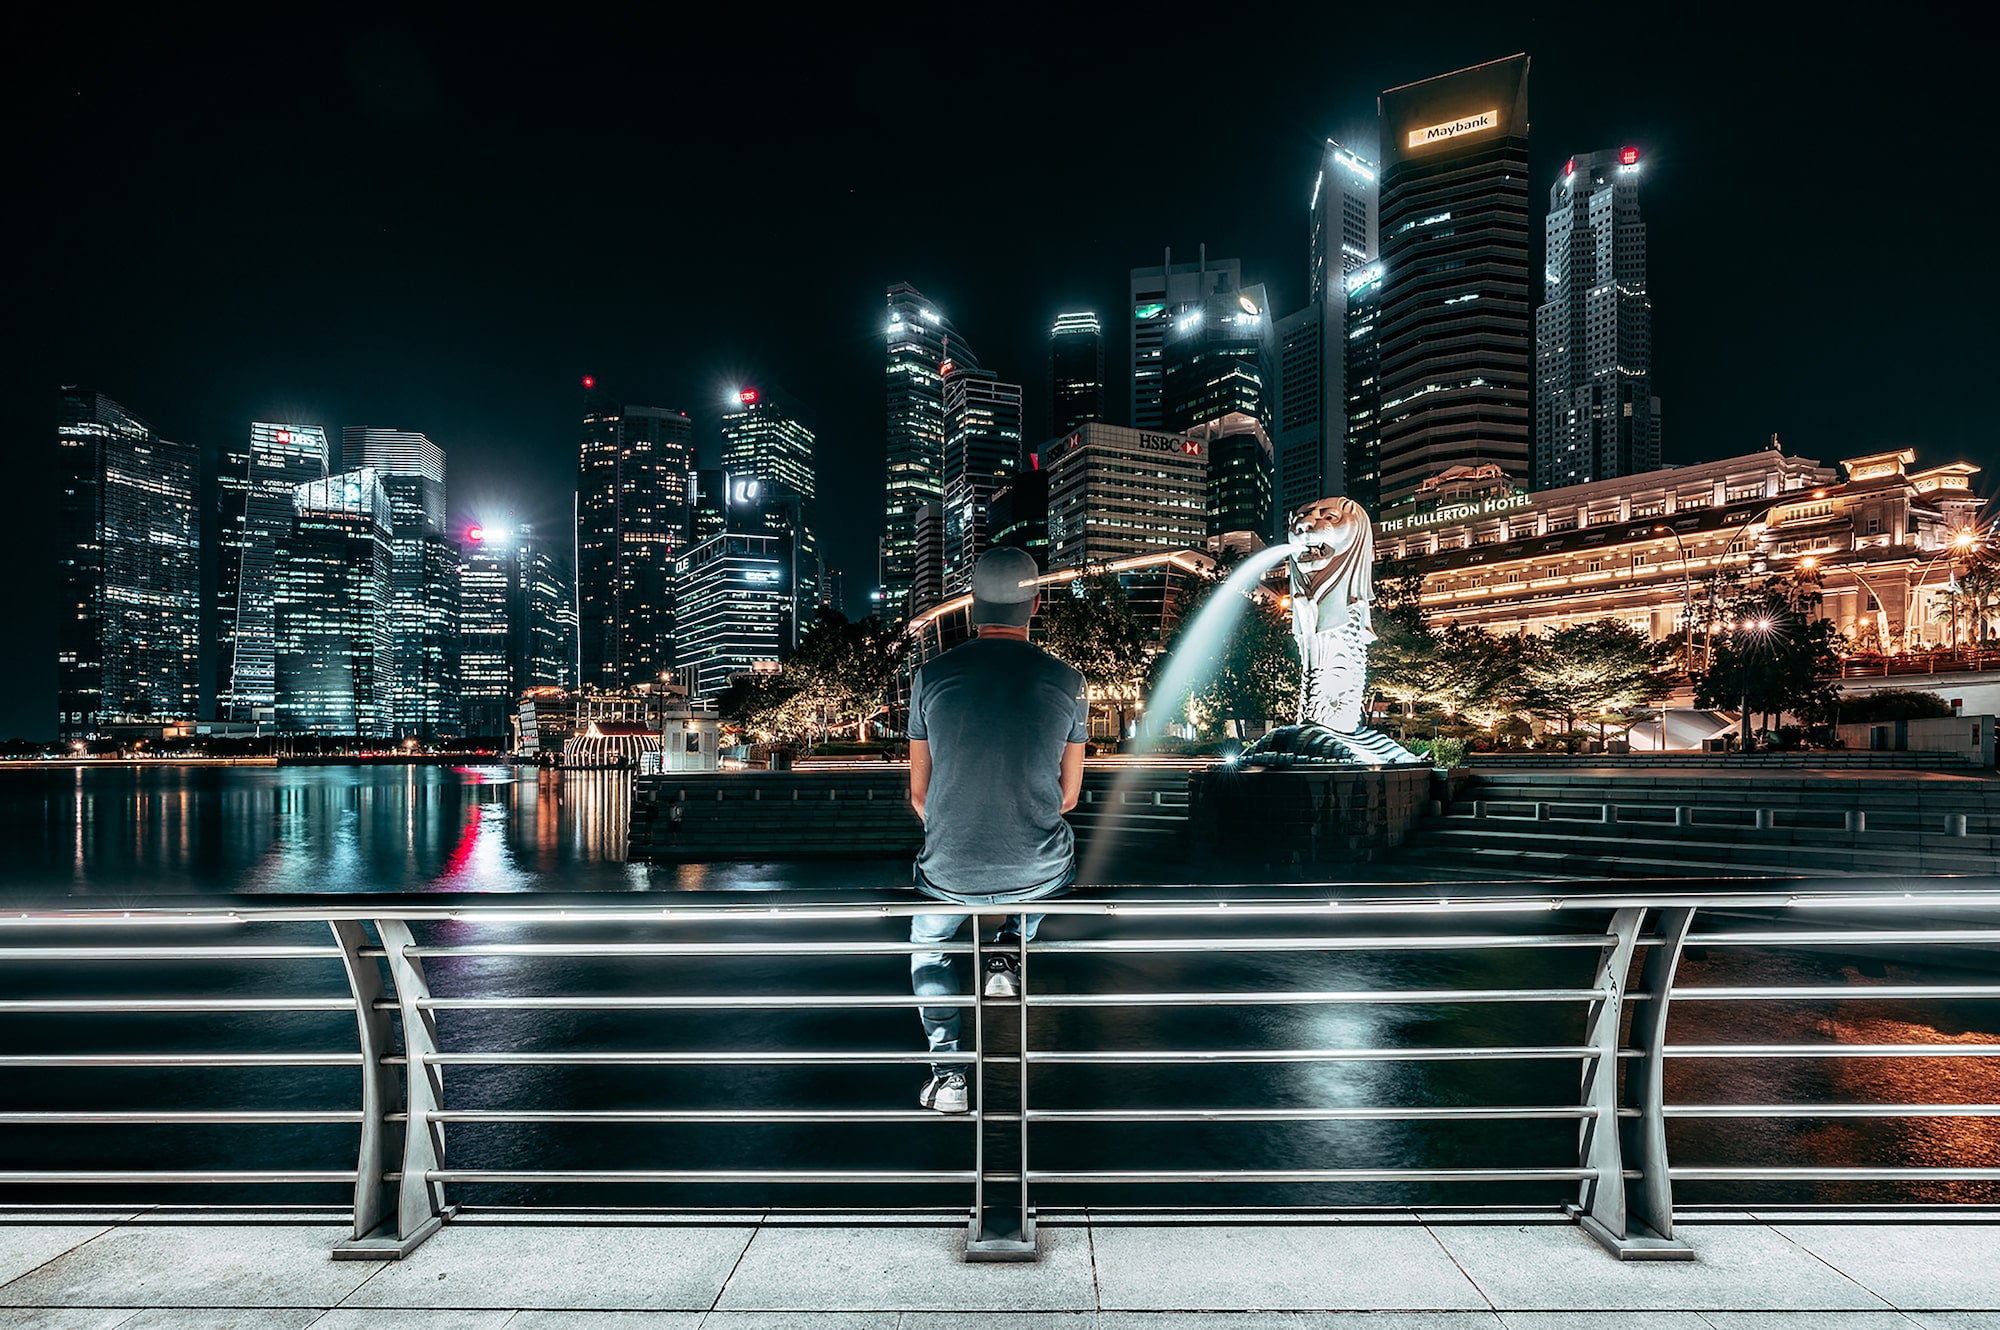 guillaume -ruchon sony alpha 7RIII long exposure rear shot of a man sitting on a bridge in singapore at night